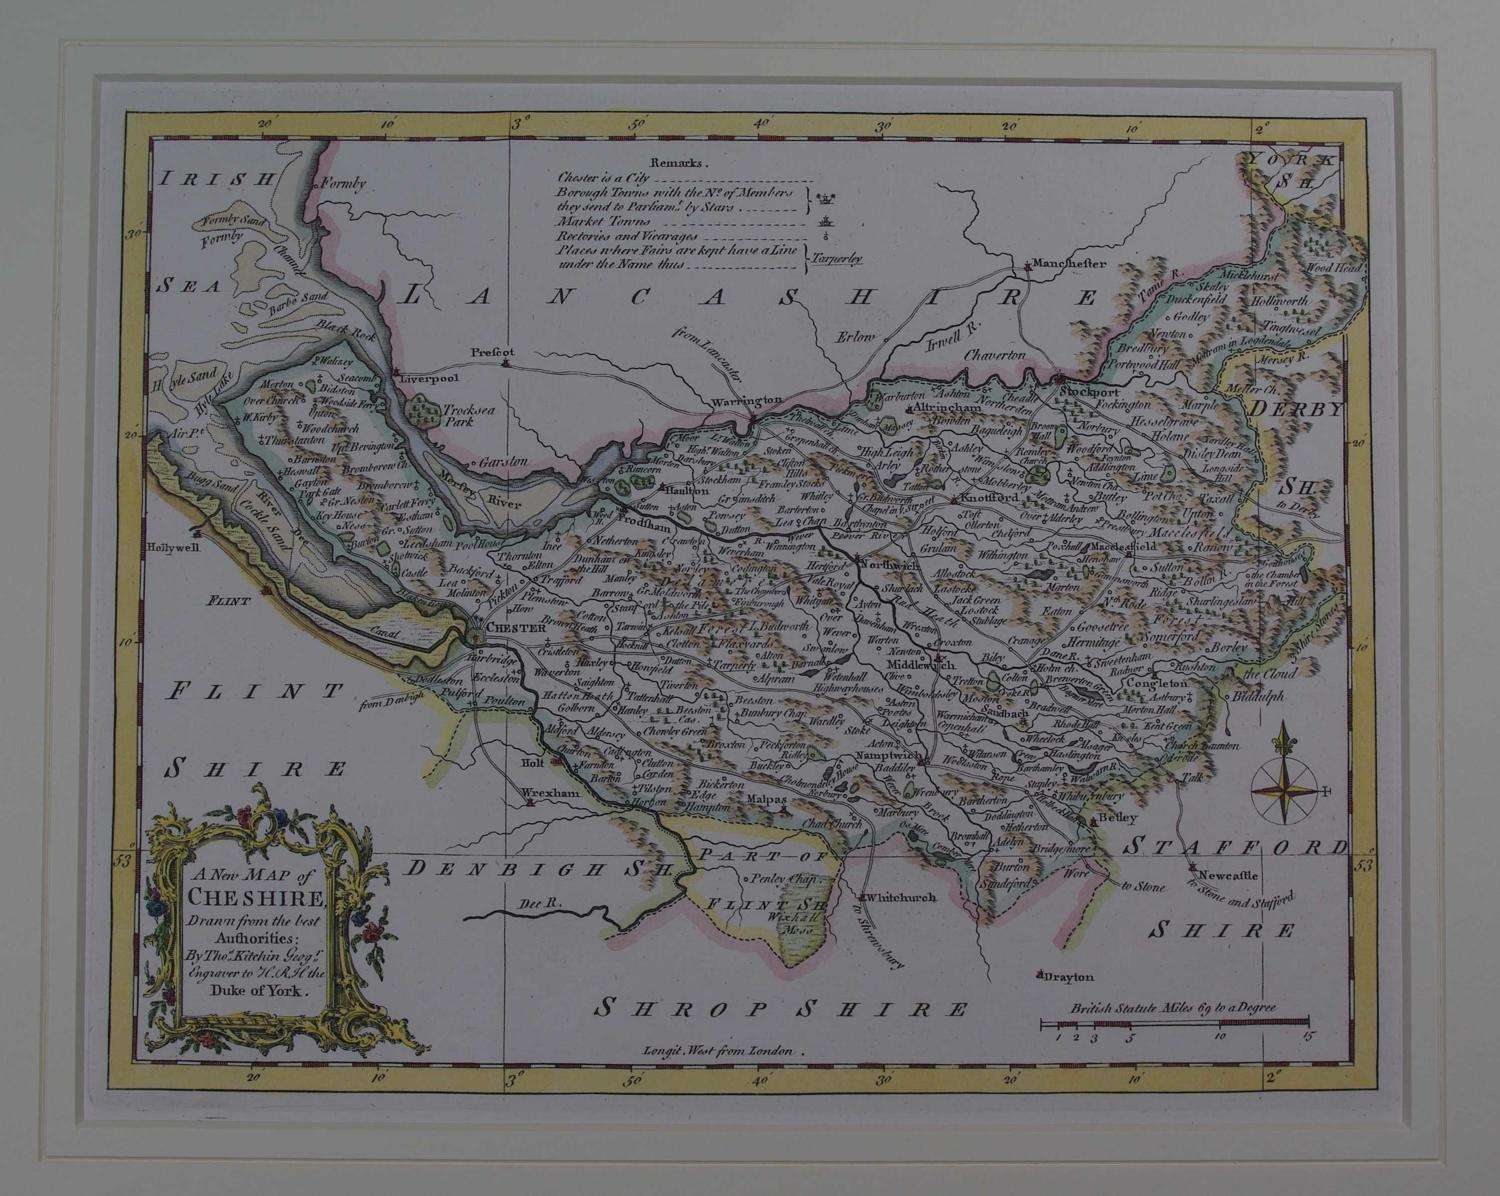 A New Map of  Cheshire by Thomas Kitchin